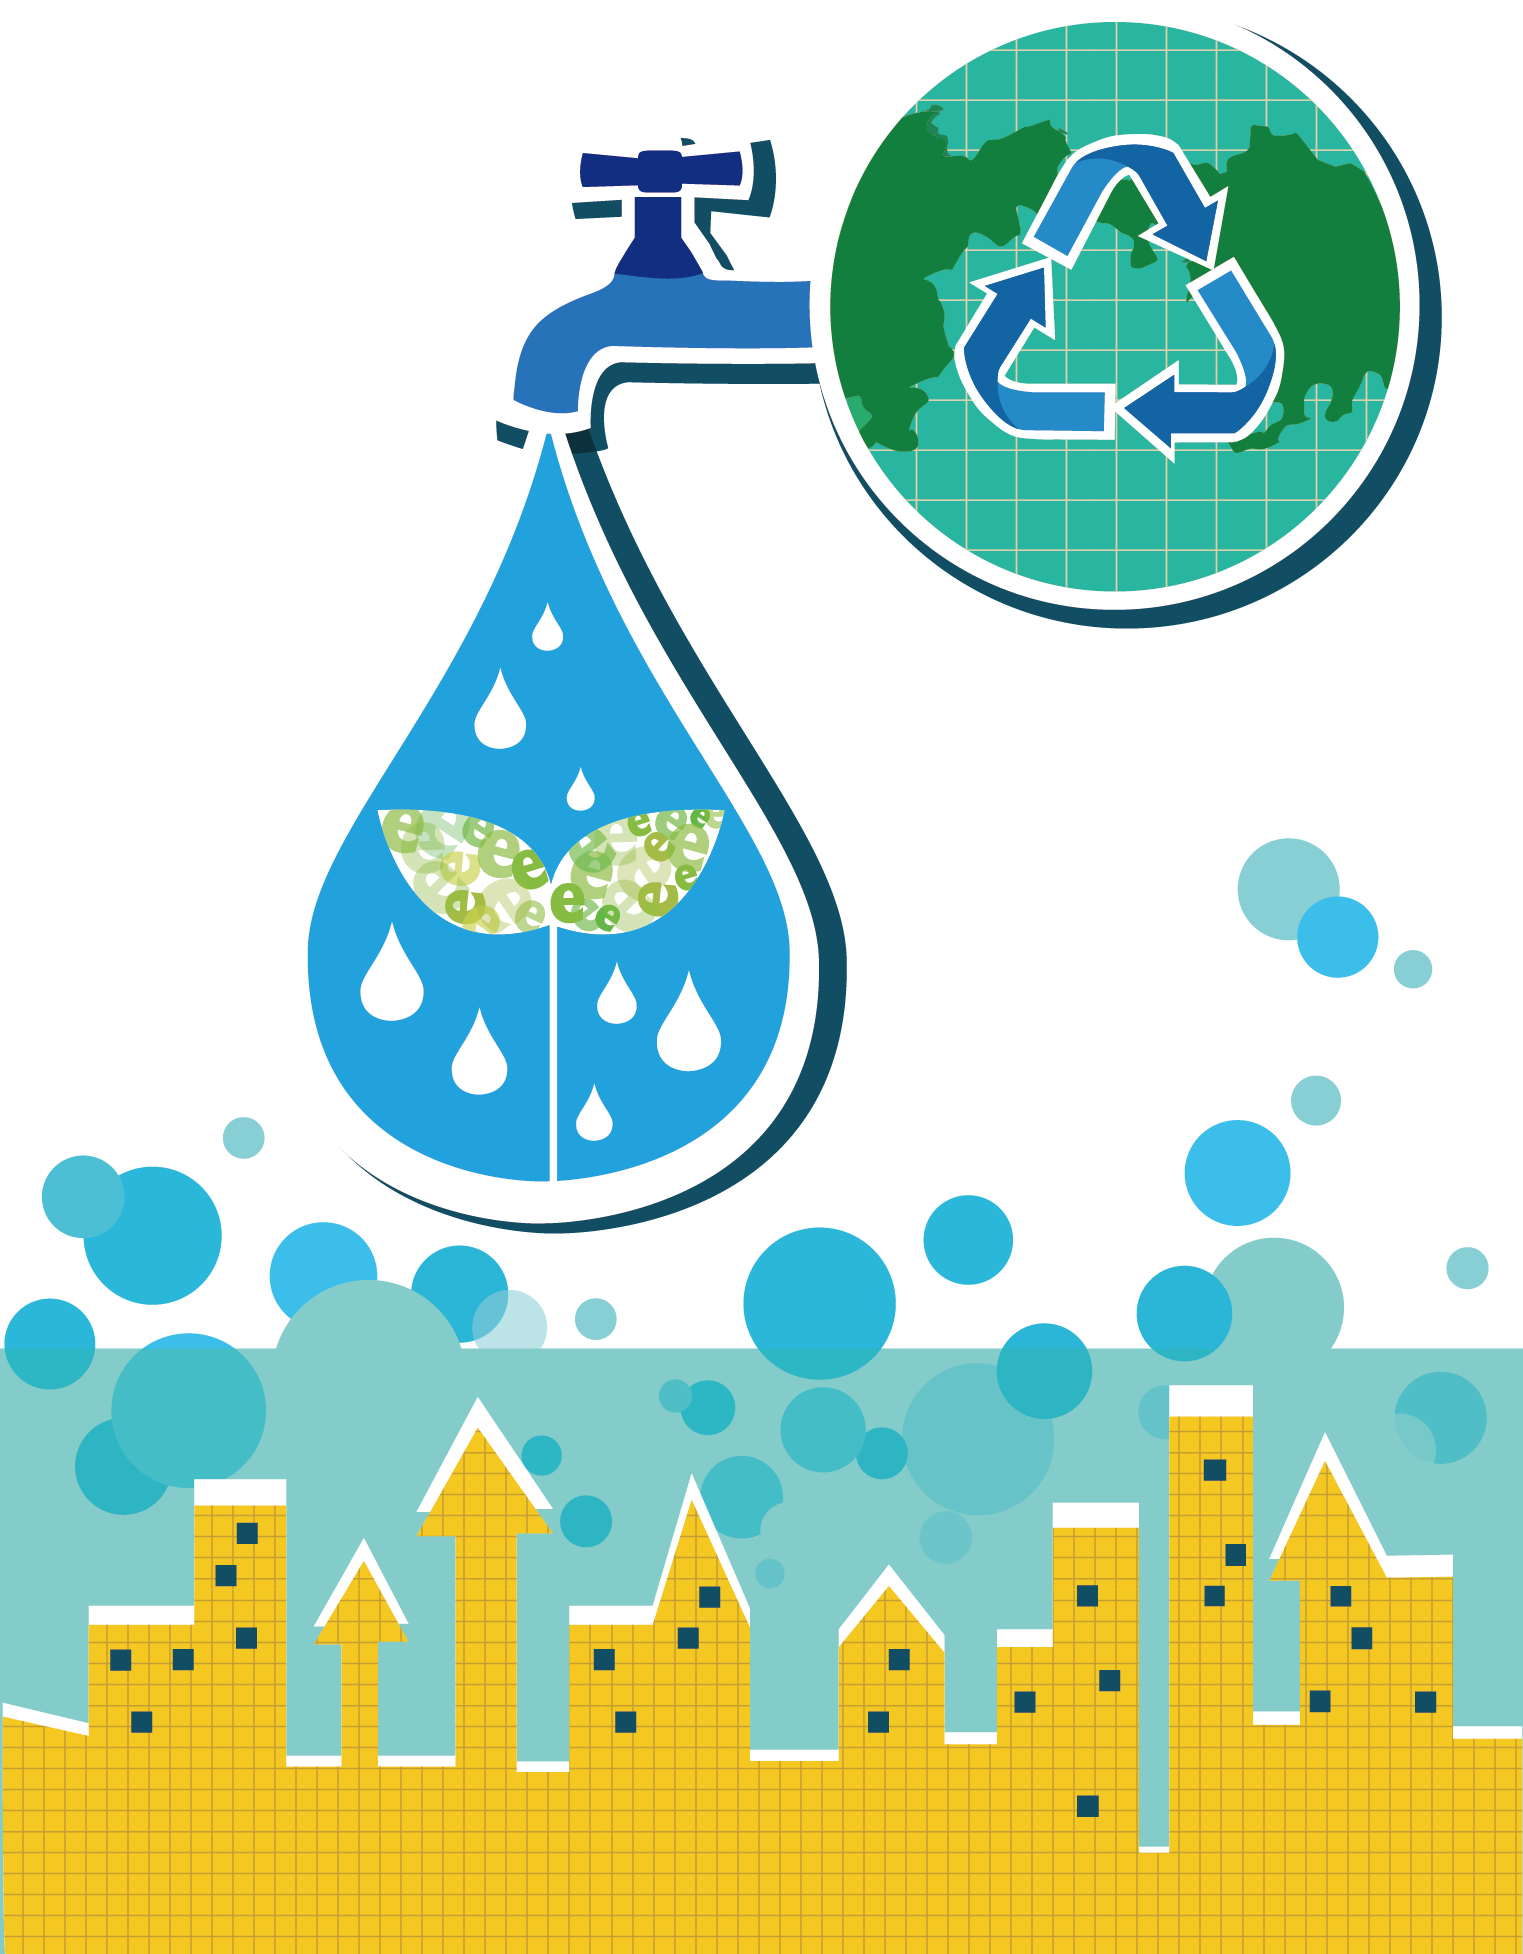 Environment vector infographic. Natural energy clean and